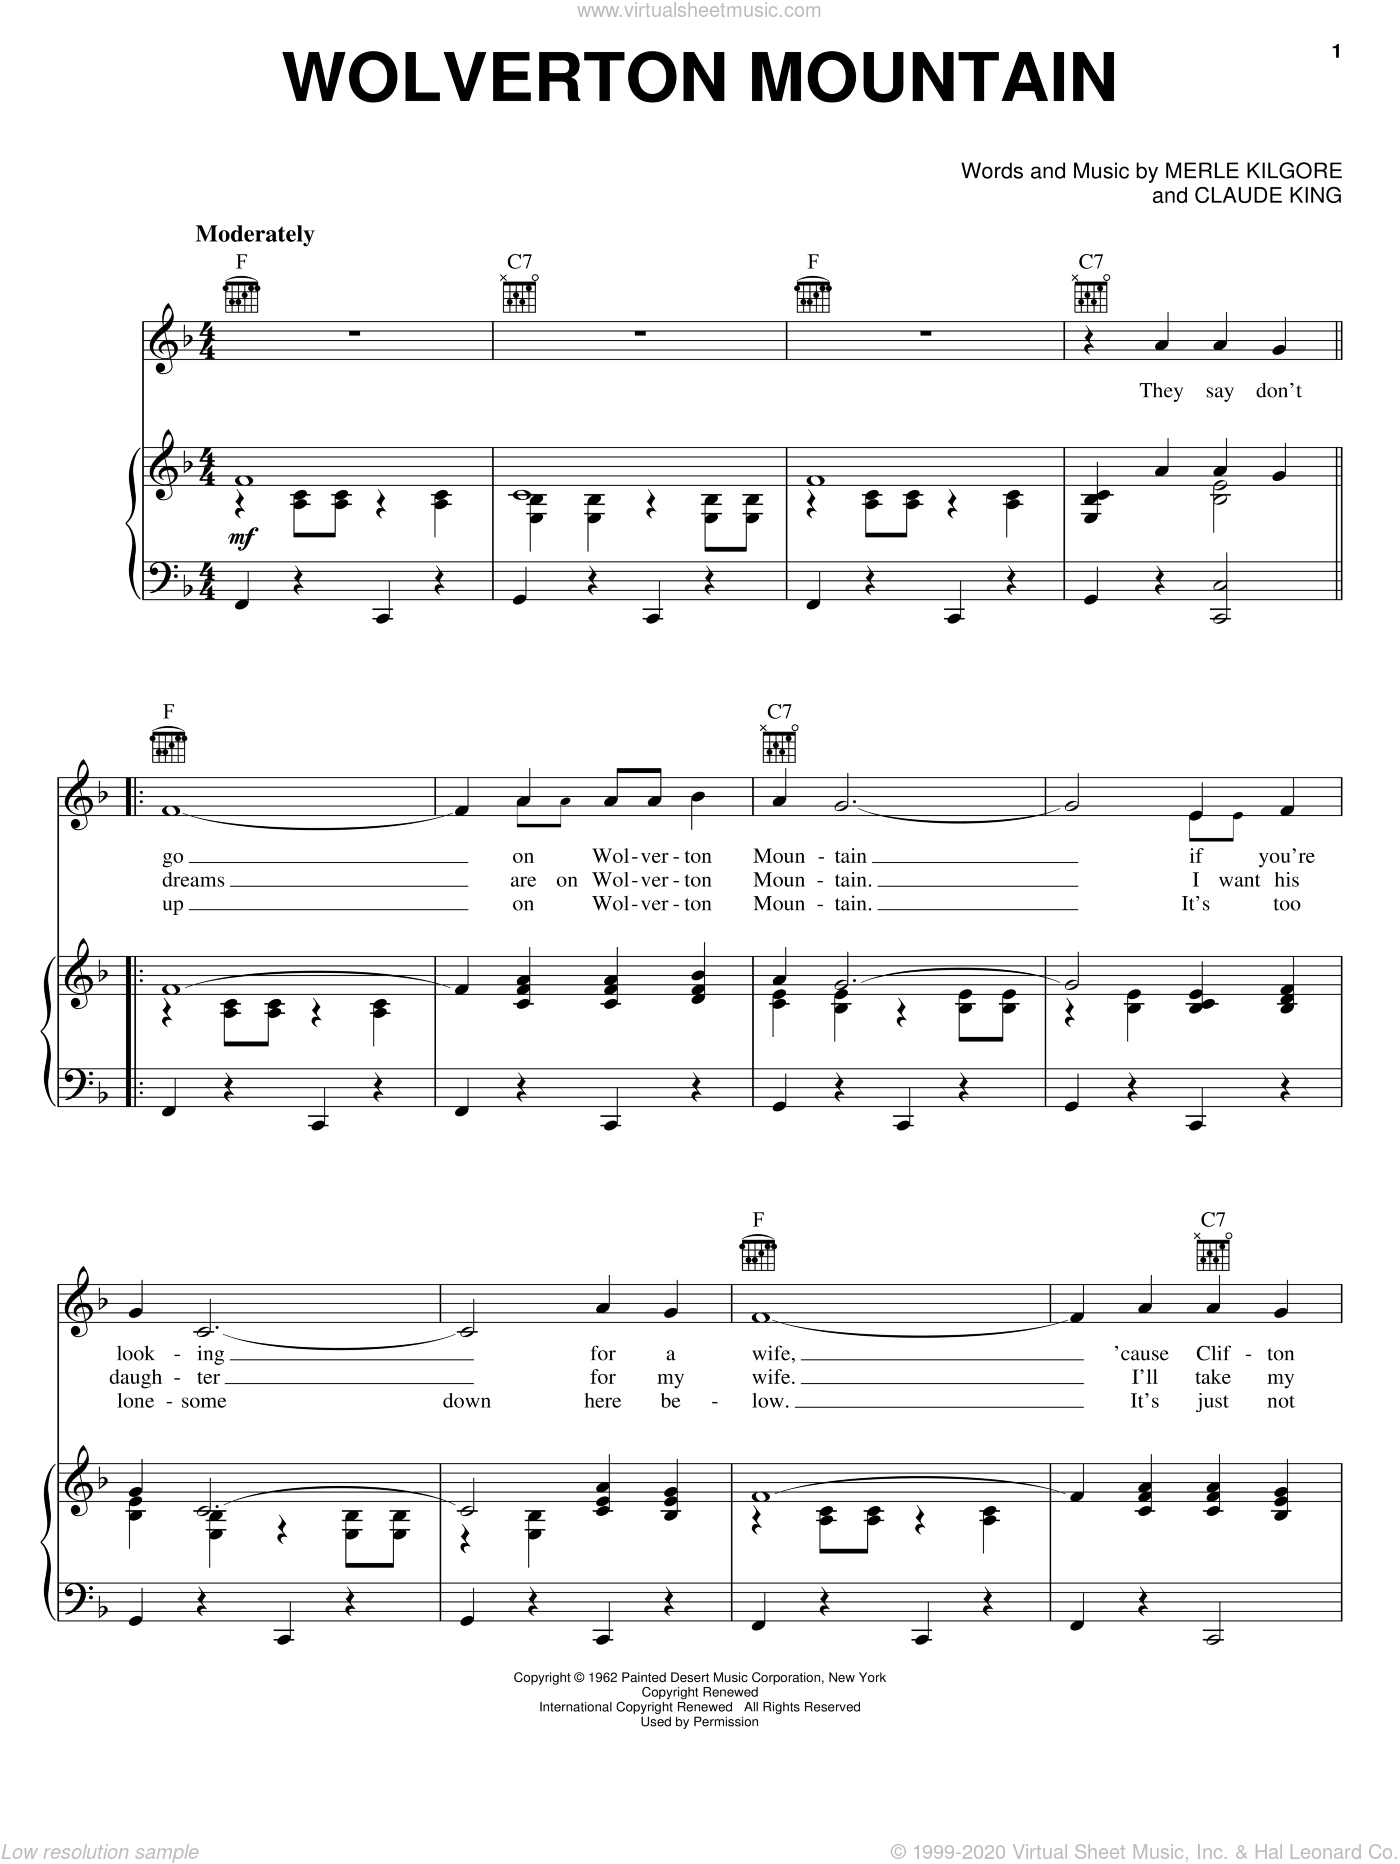 Wolverton Mountain sheet music for voice, piano or guitar by Carole King, Hank Williams, Jr., Claude King and Merle Kilgore, intermediate skill level